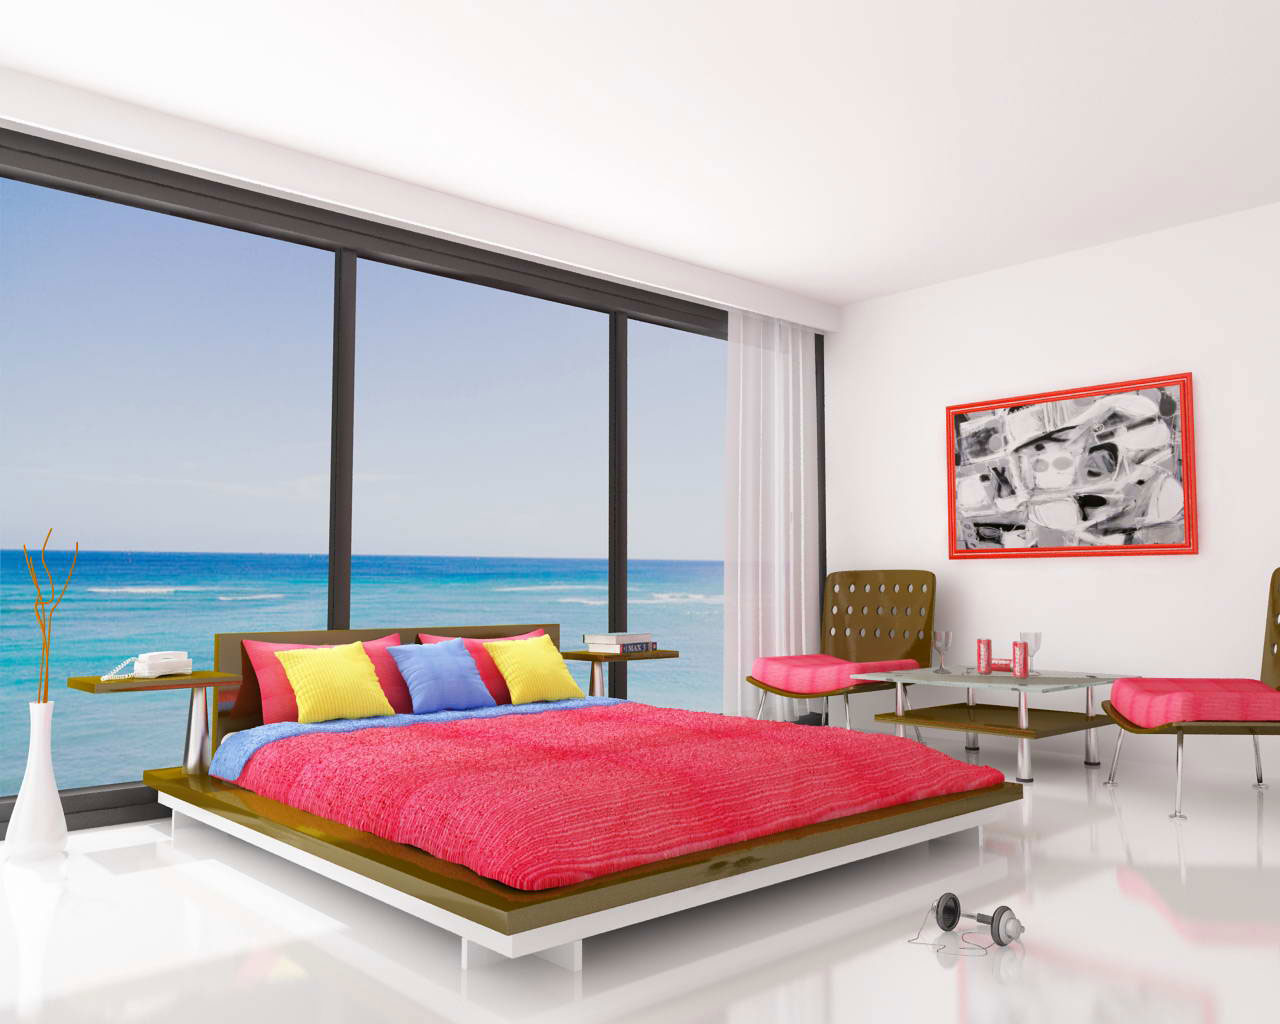 Simple bedroom designs for square rooms dream house for Beach house bedroom designs